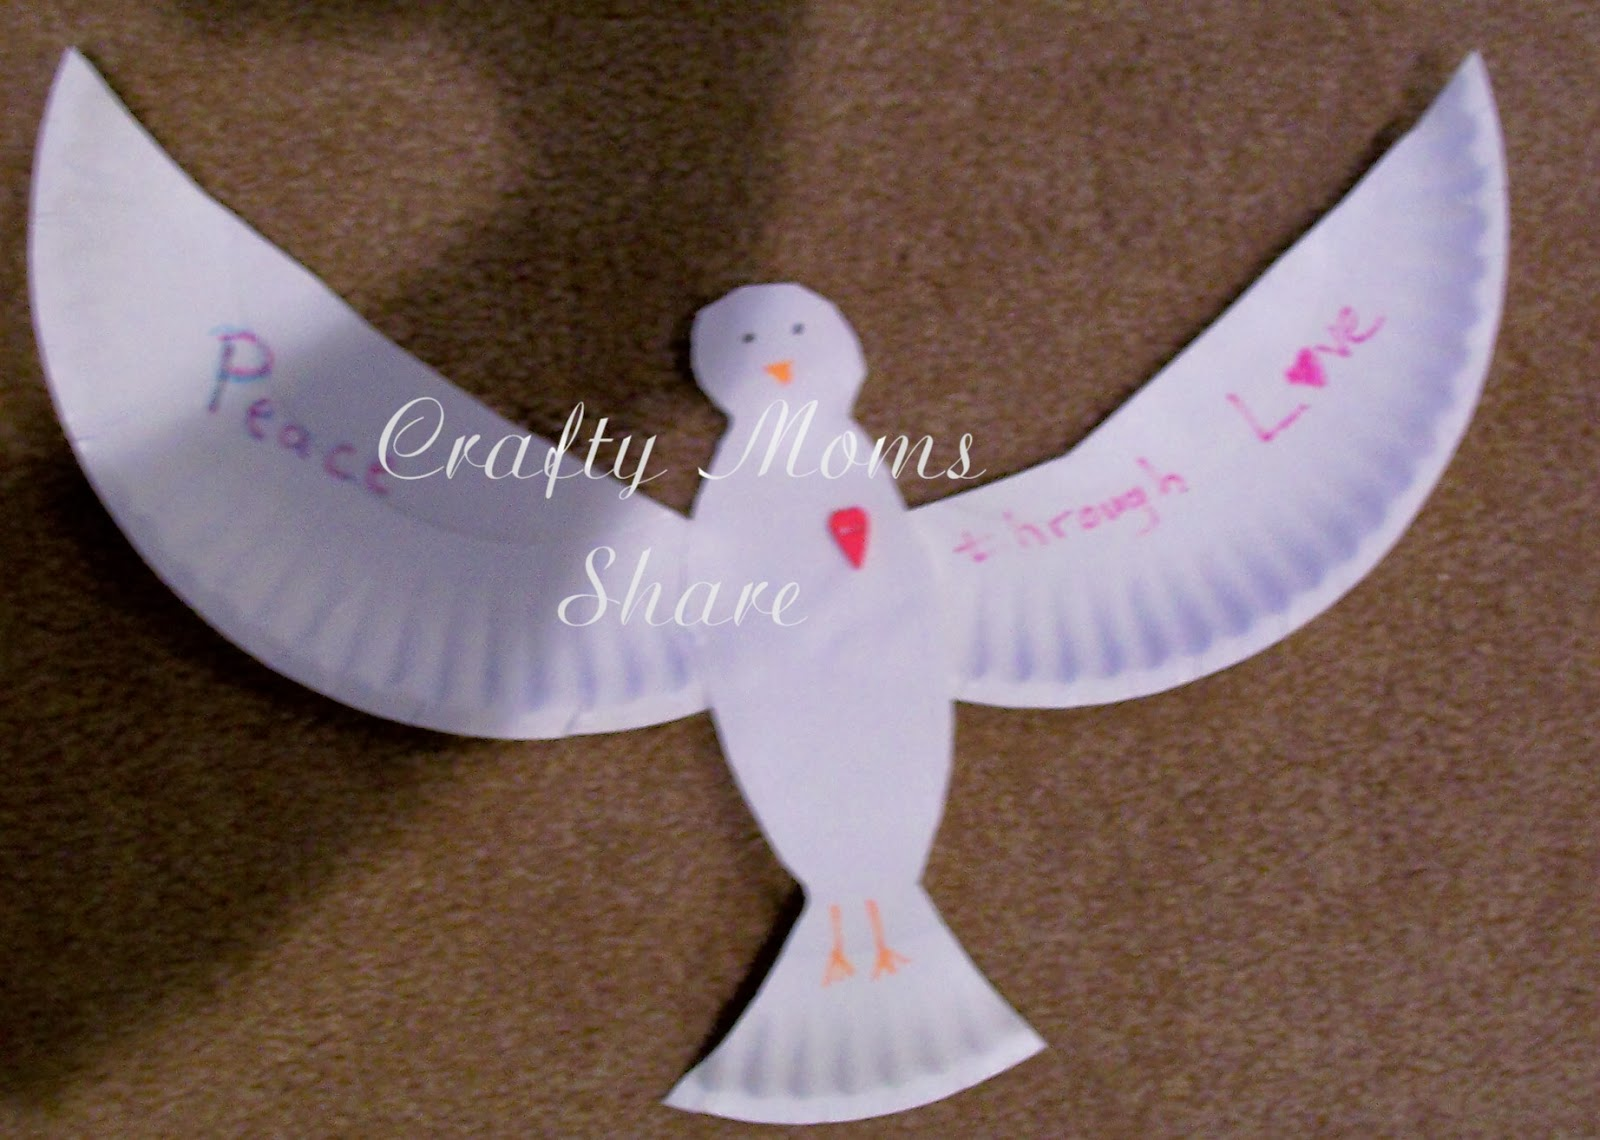 Crafty Moms Share Peace Through Love Teachings Of Dr